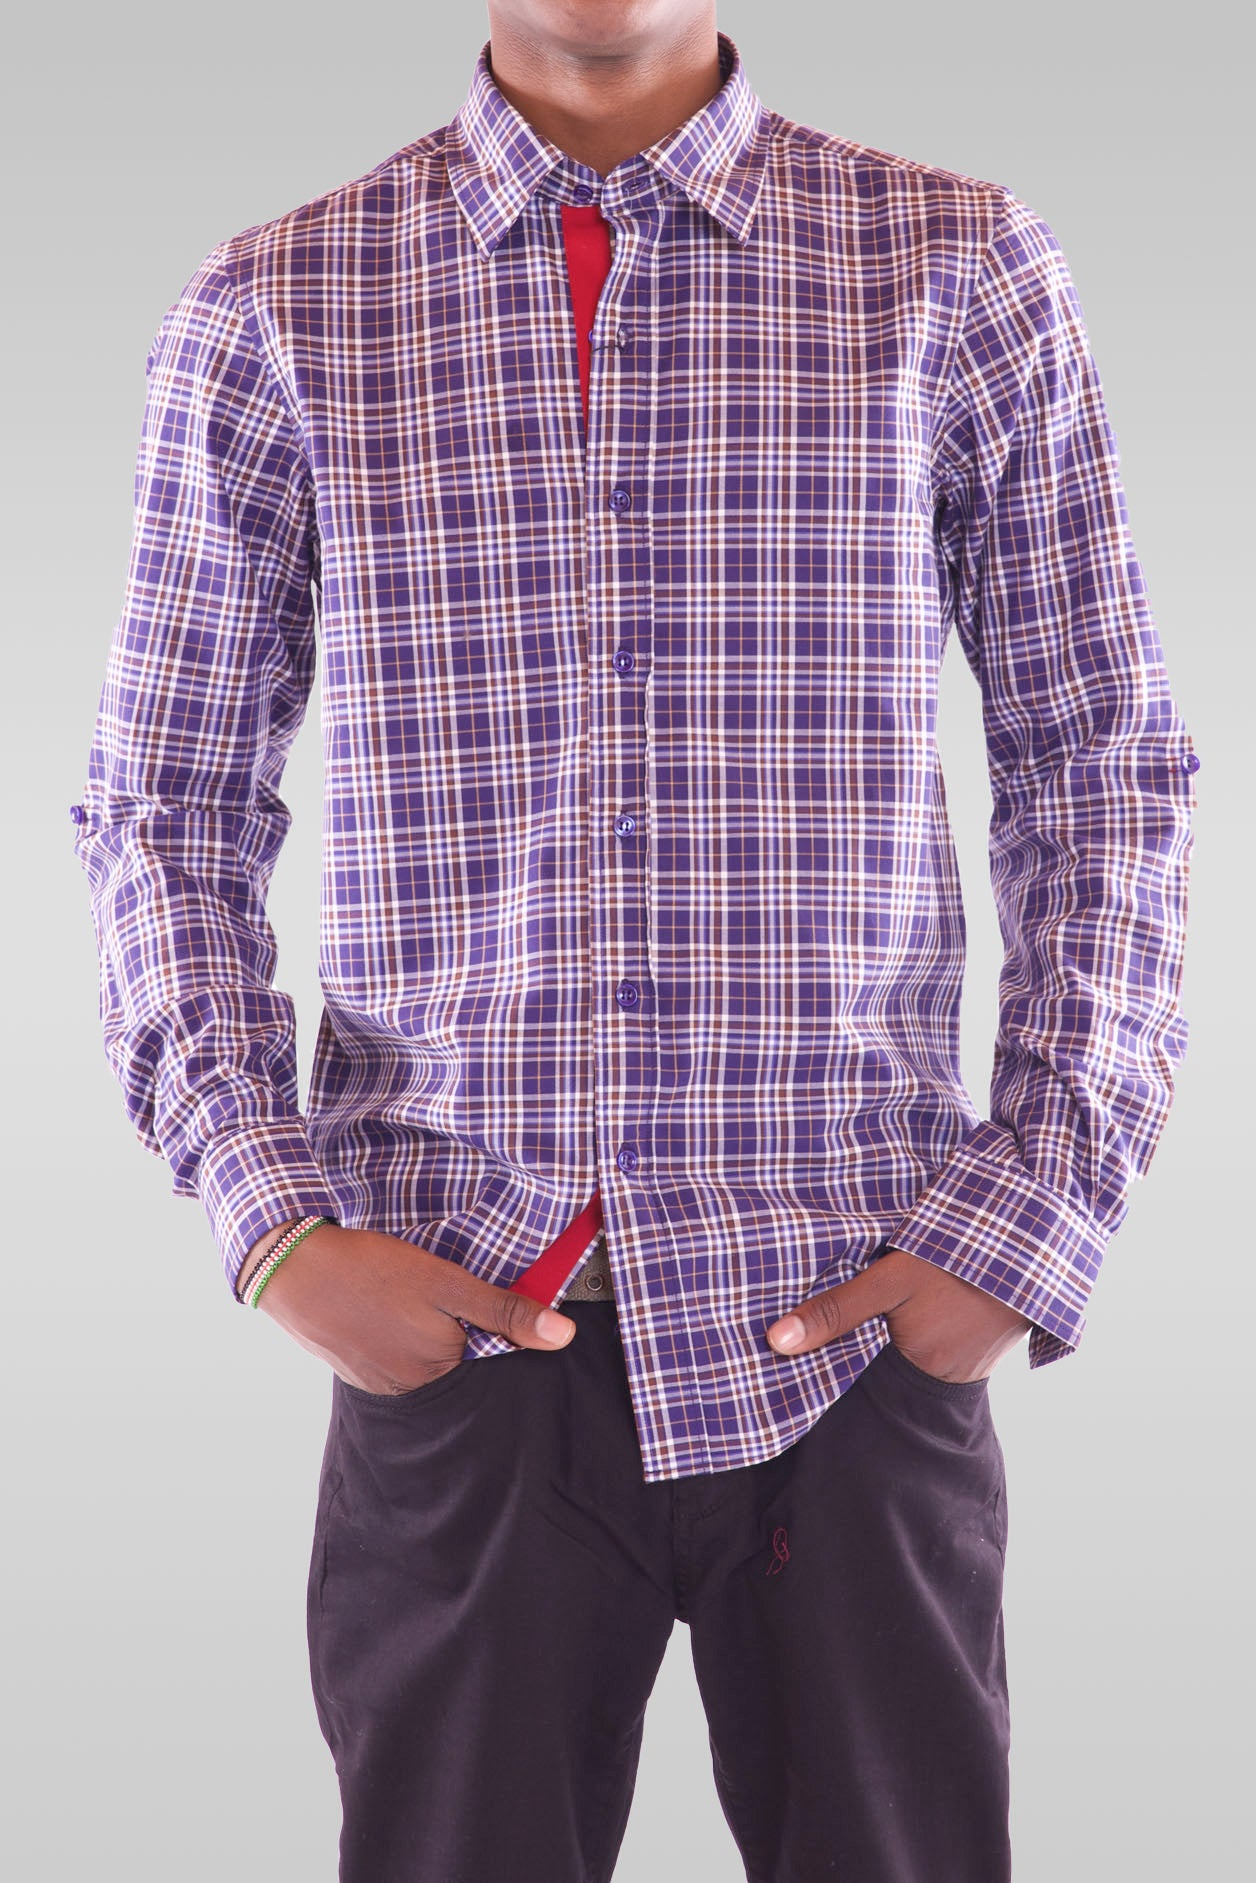 Men's Full Sleeve Purple Shirt - Hillmarten